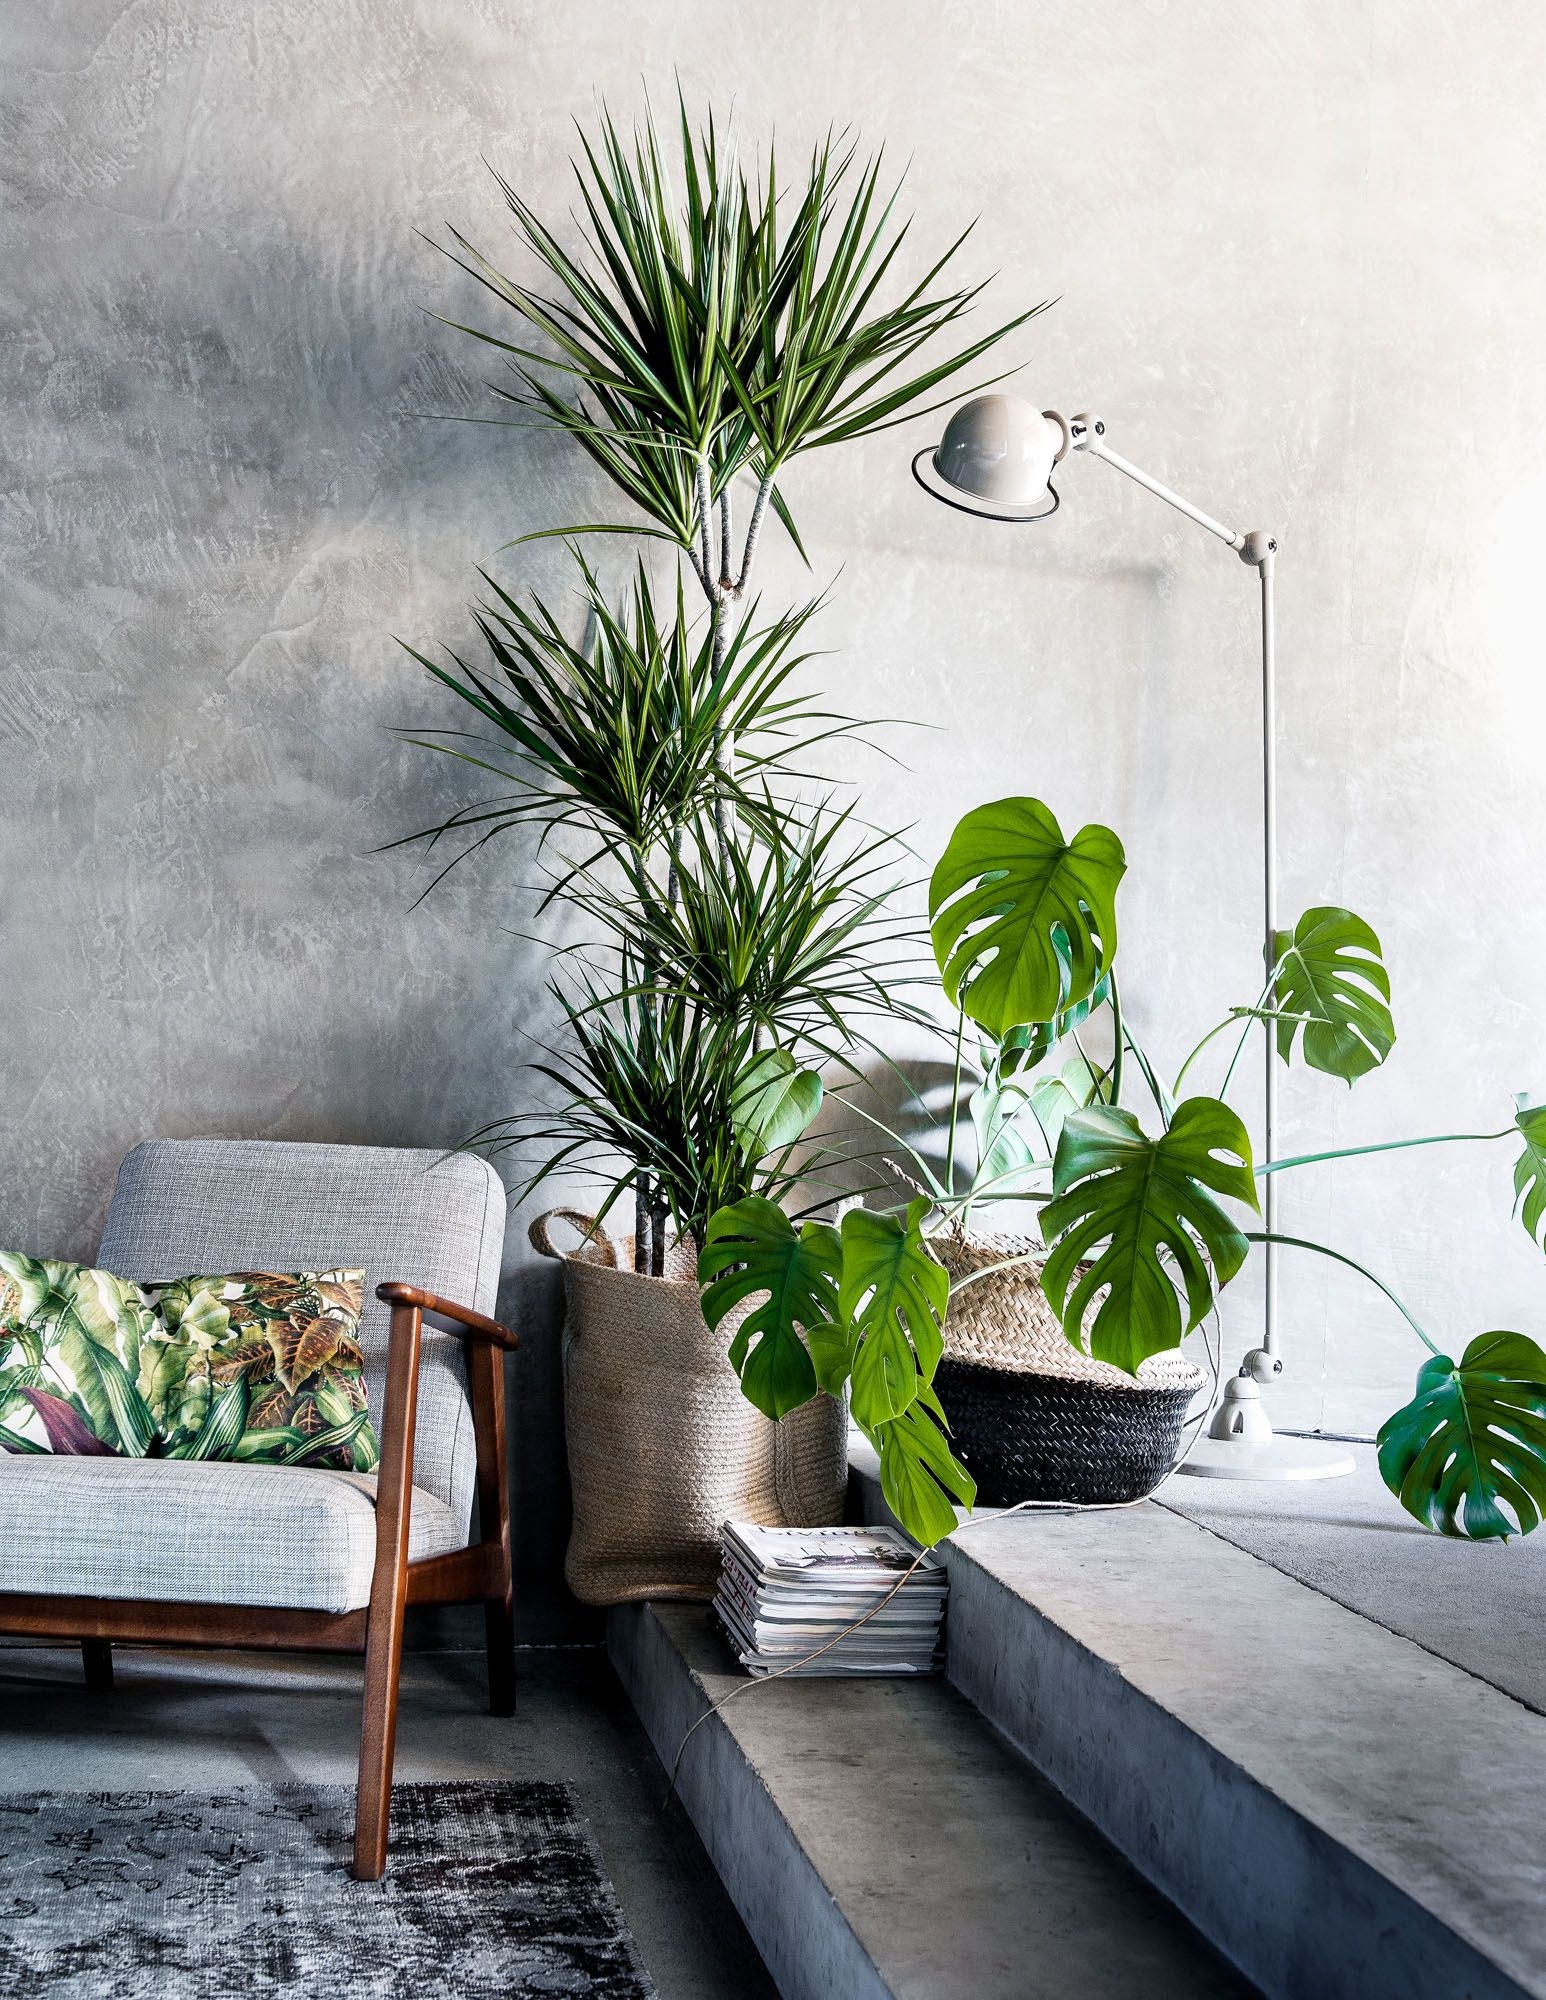 Plante D'intérieur Botanic See Why Botanic Style Is The Ultimate Interior Design Hit For 2017